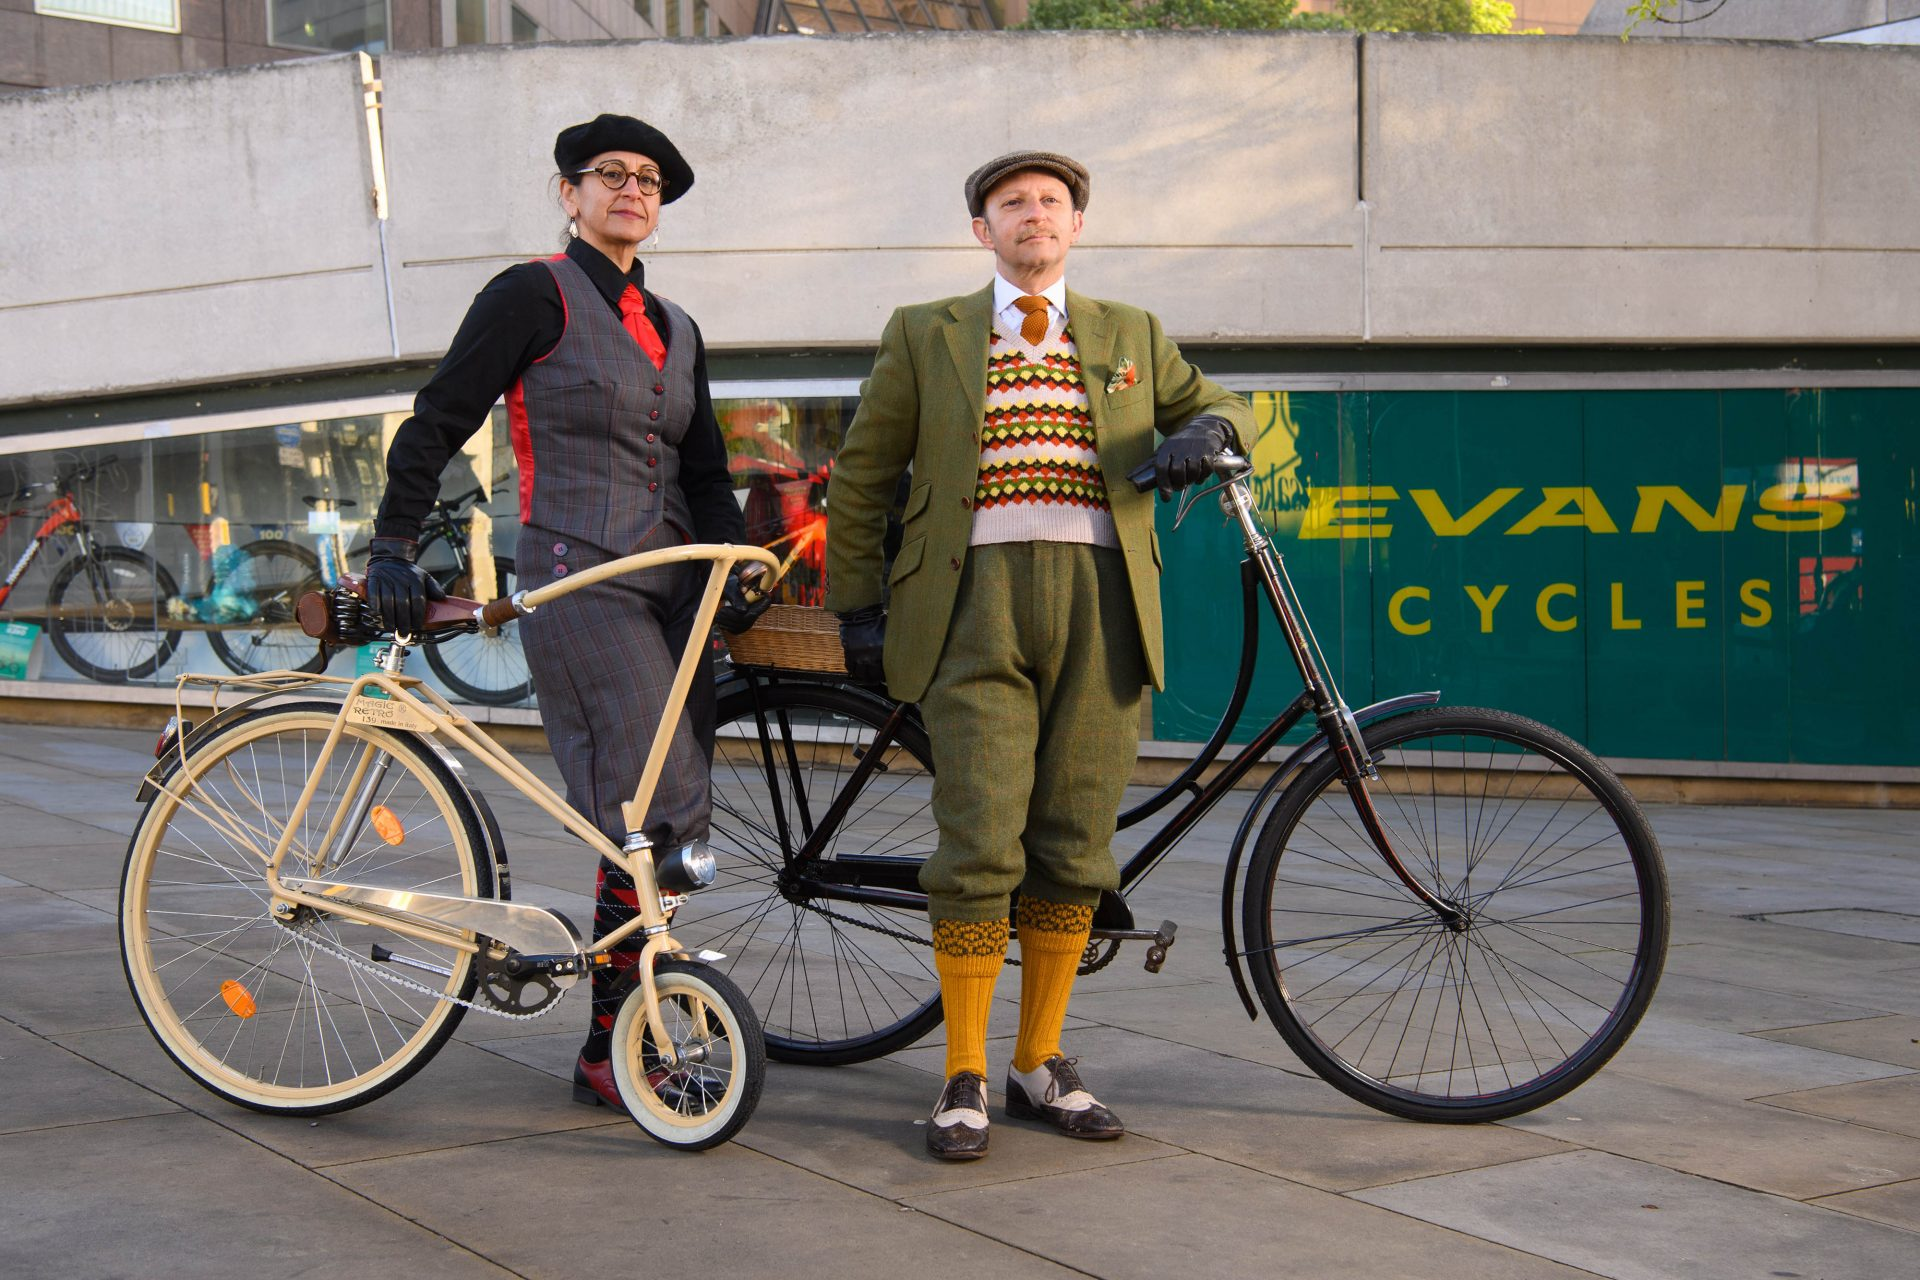 Evans Cycles Celebrates 100 Years on the UK High Street